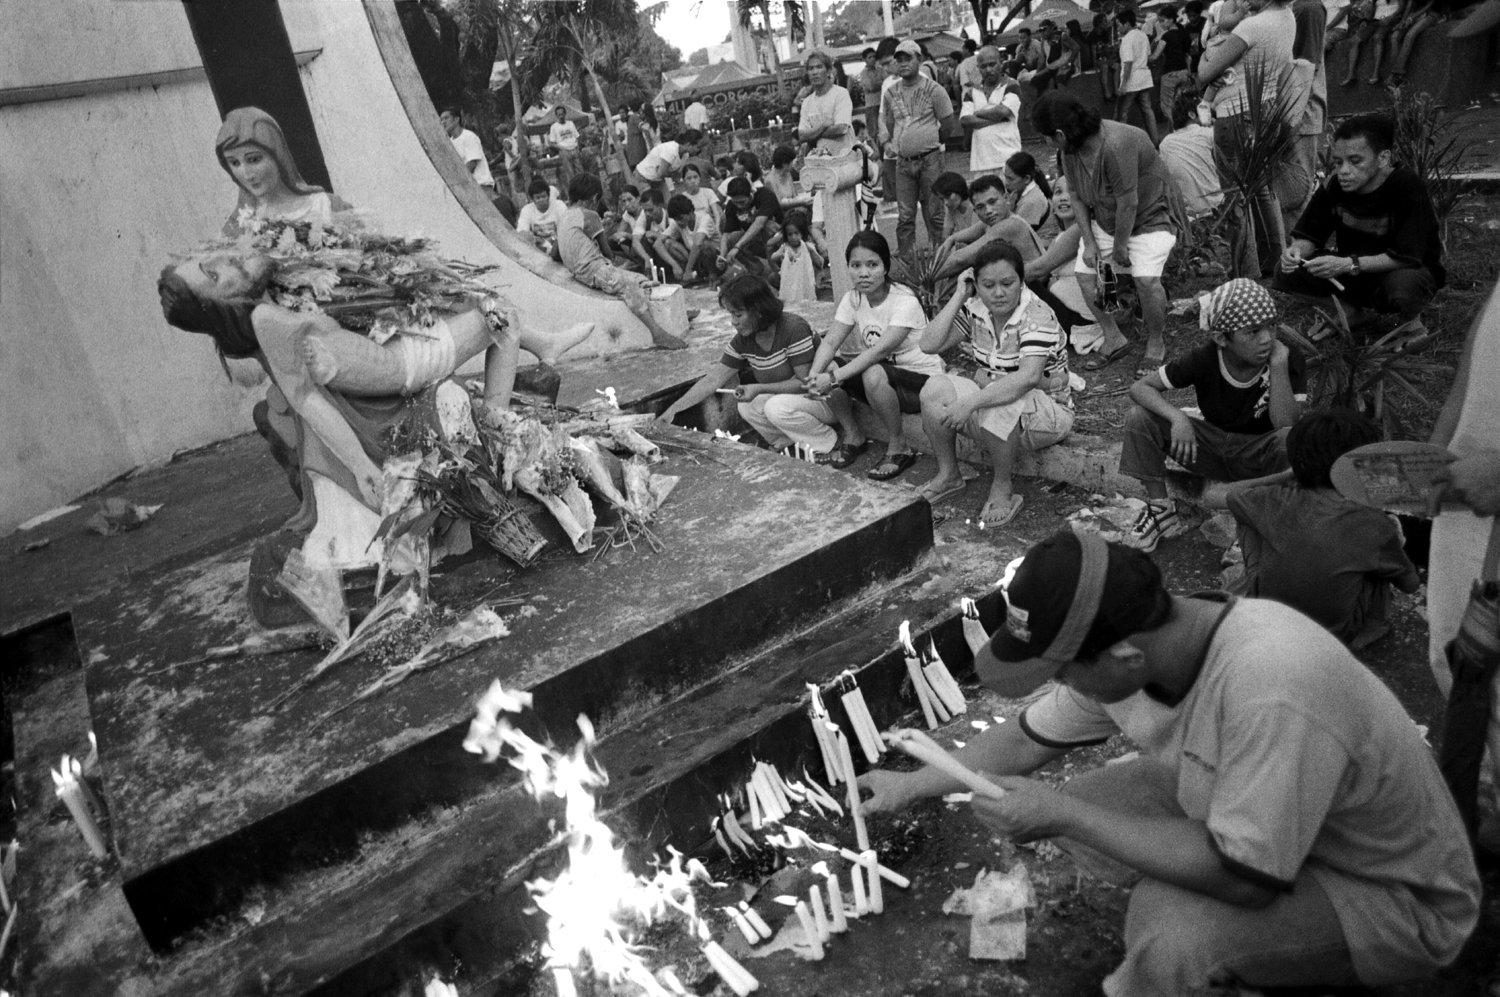 fire memorial death day of the dead catholic manila philippines